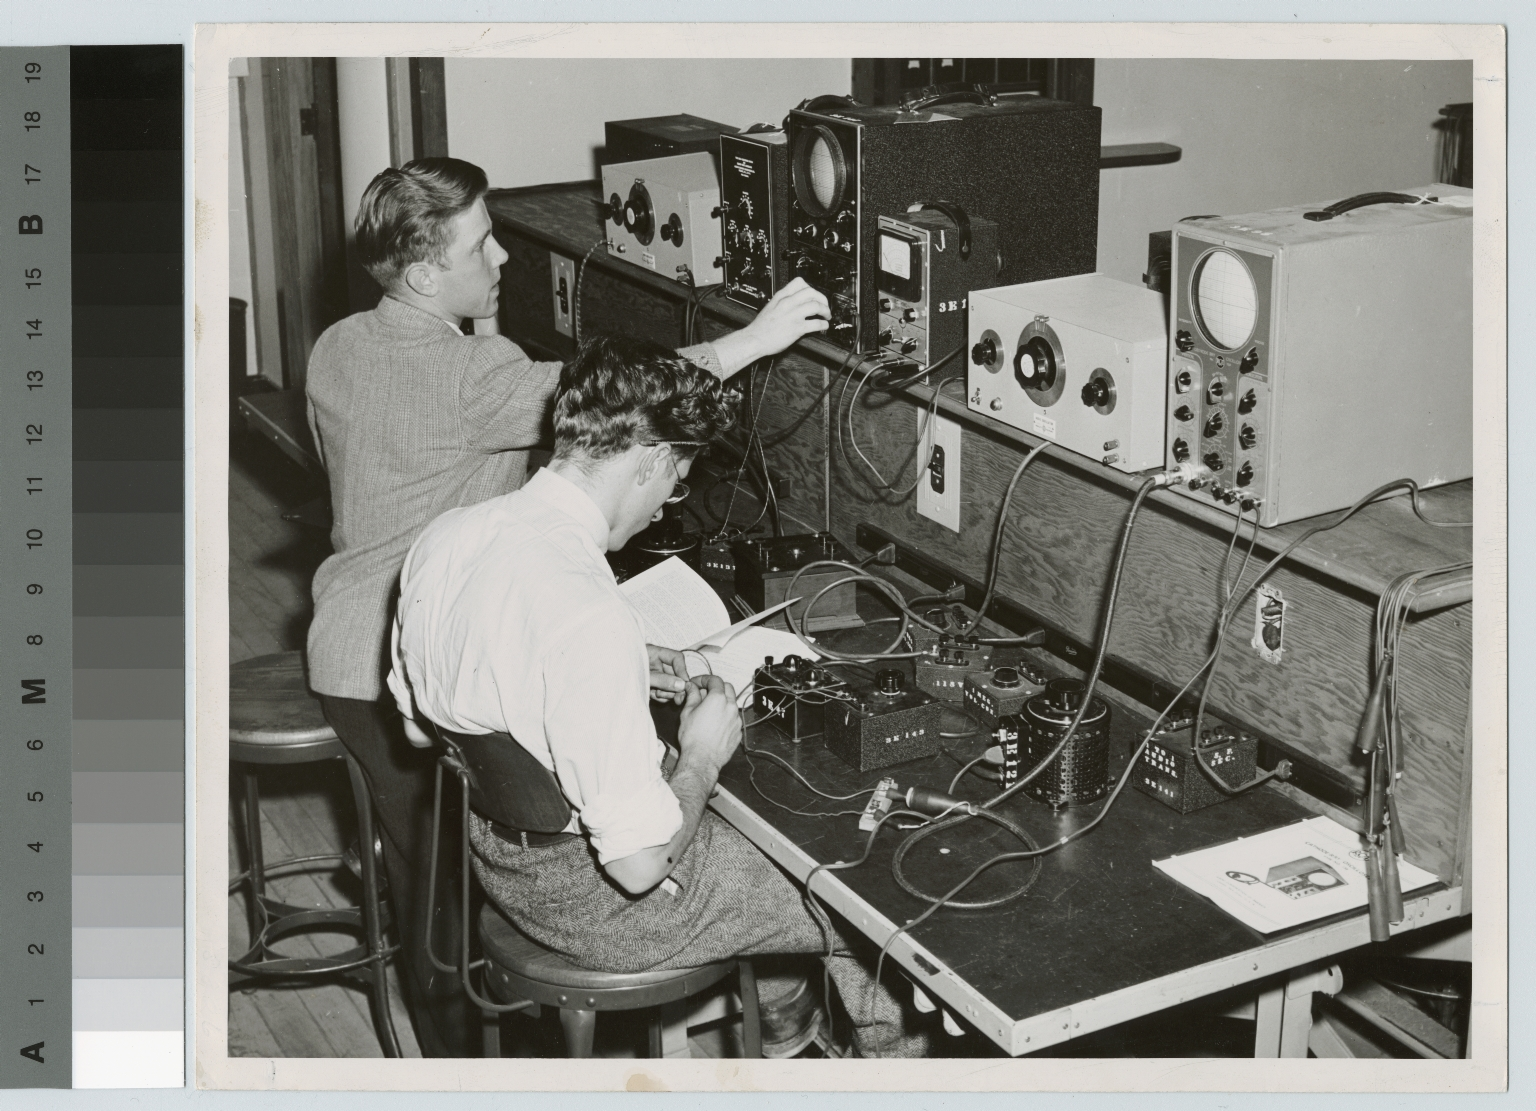 Students working on electrical equipment, Electrical Department, Rochester Institute of Technology, [1950-1960]